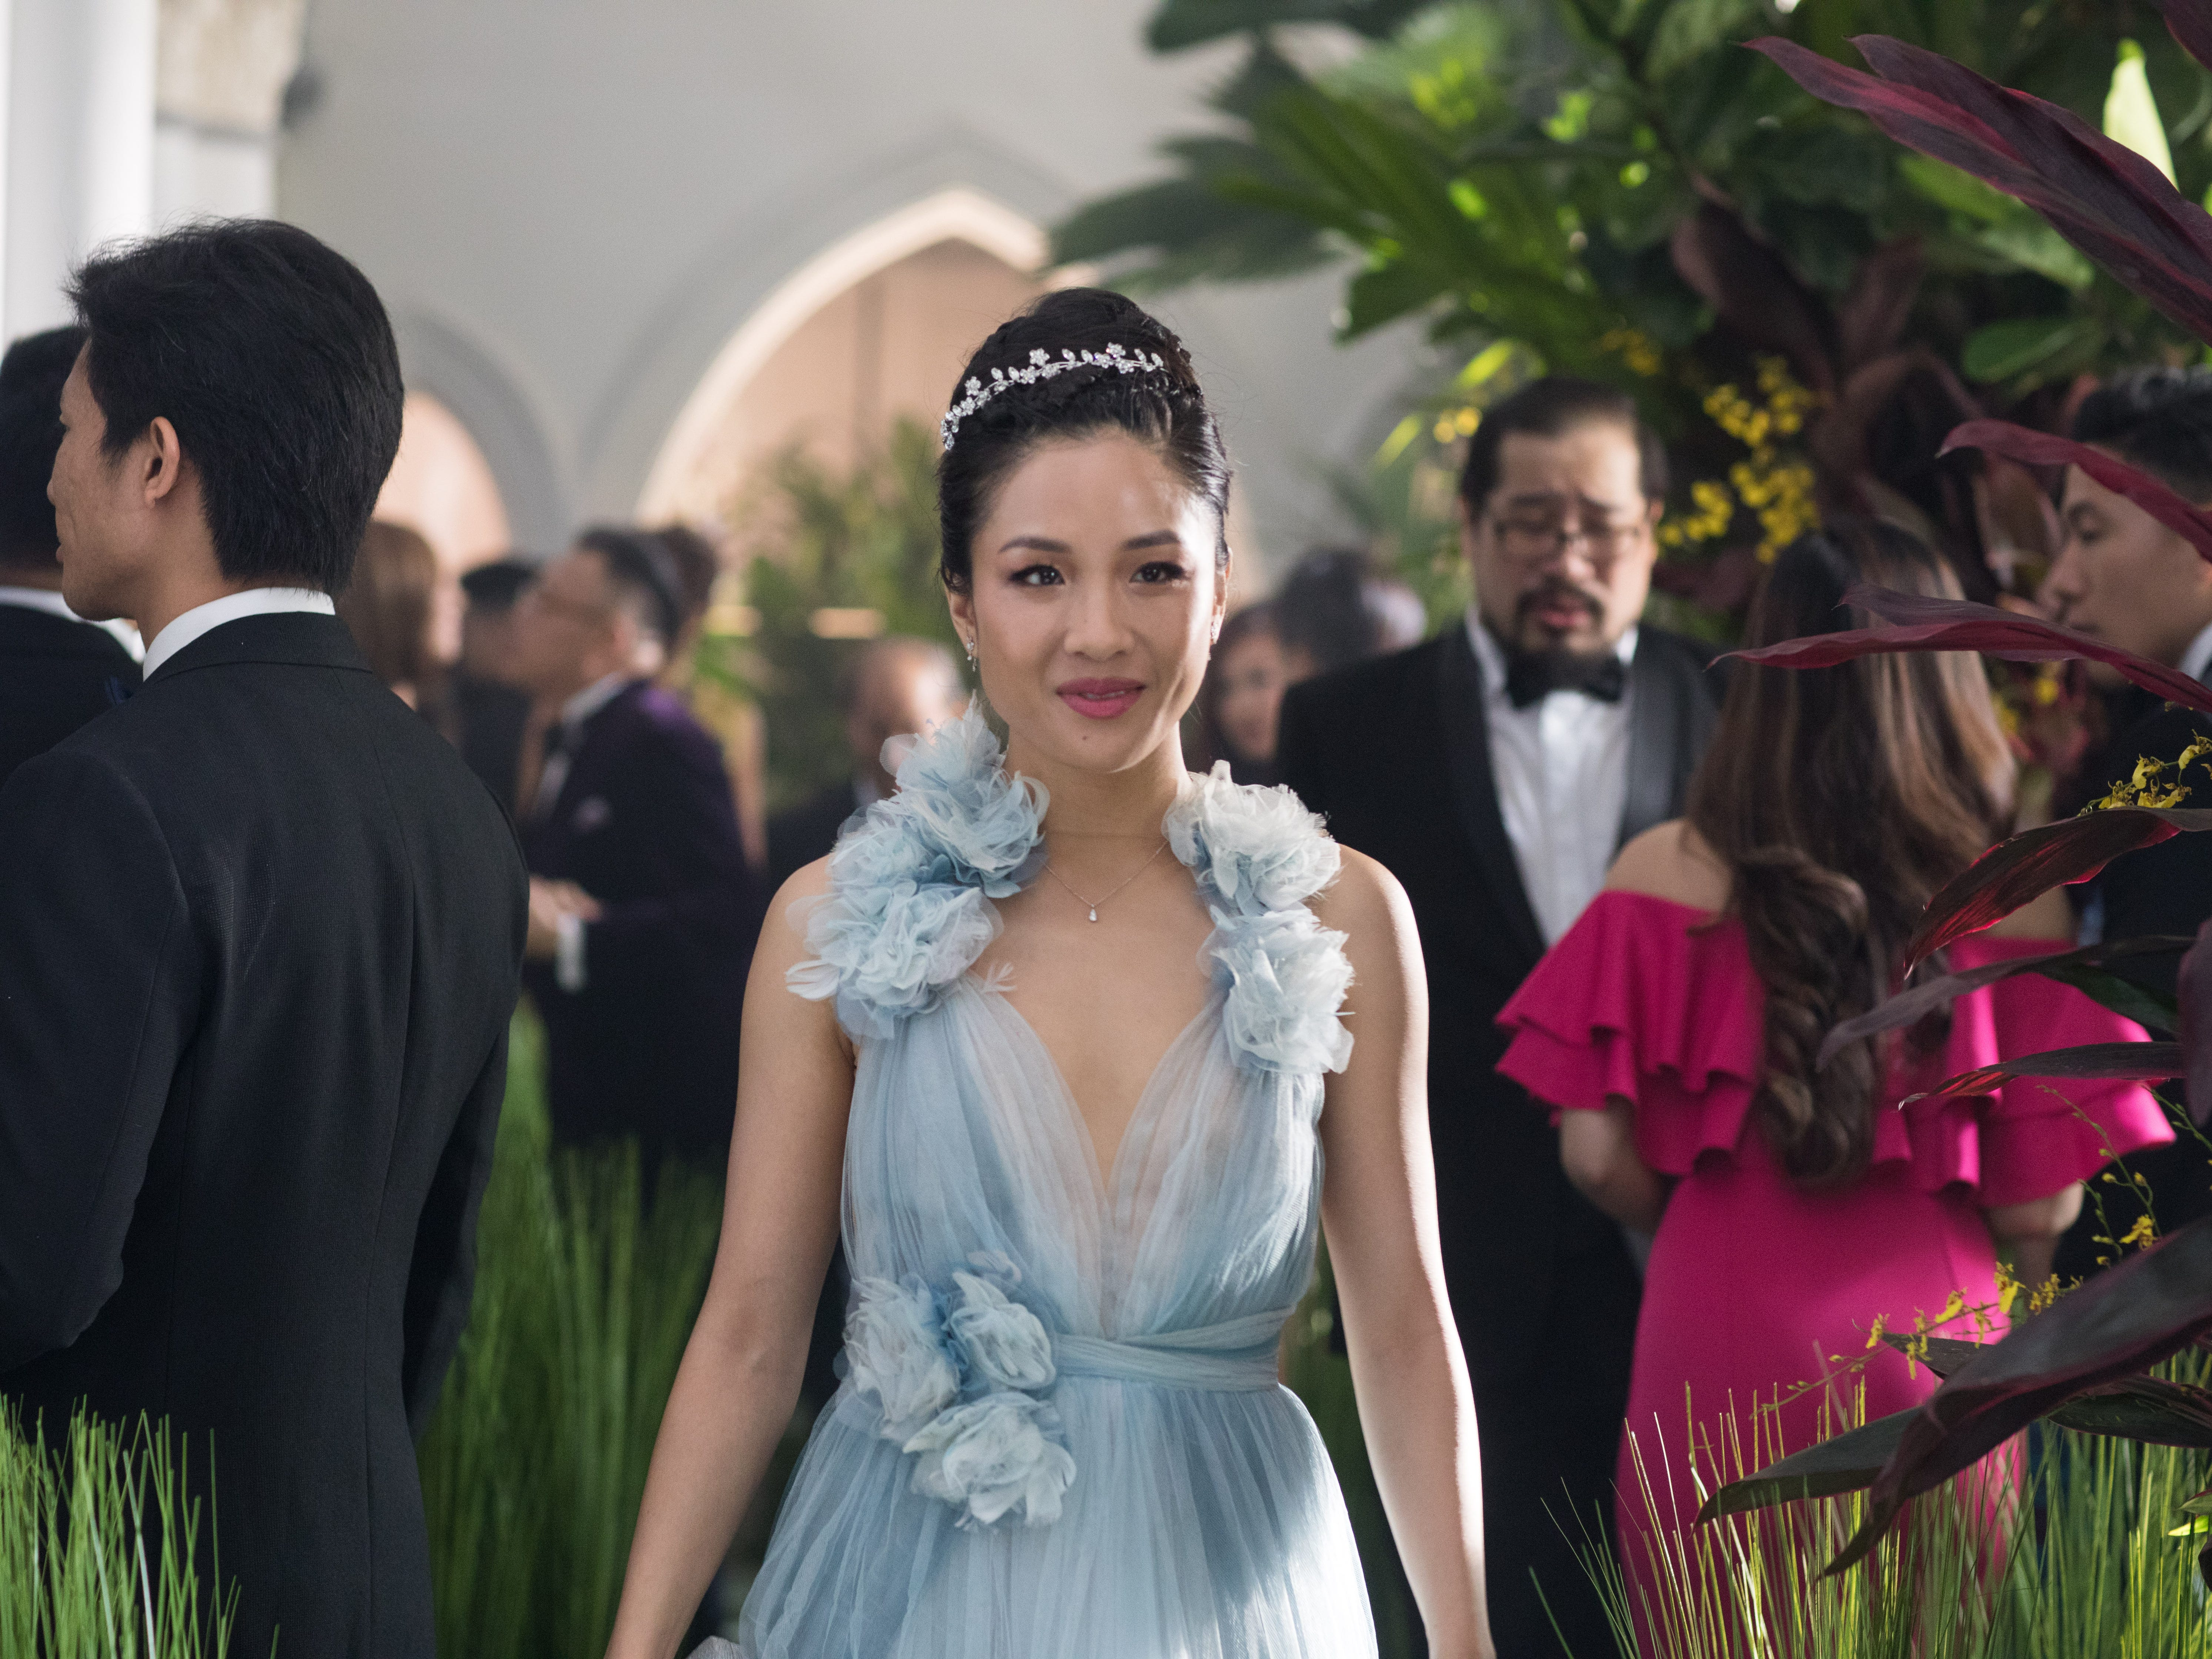 Oscar nominations: Asians are shut out, again. So are female directors. What gives?